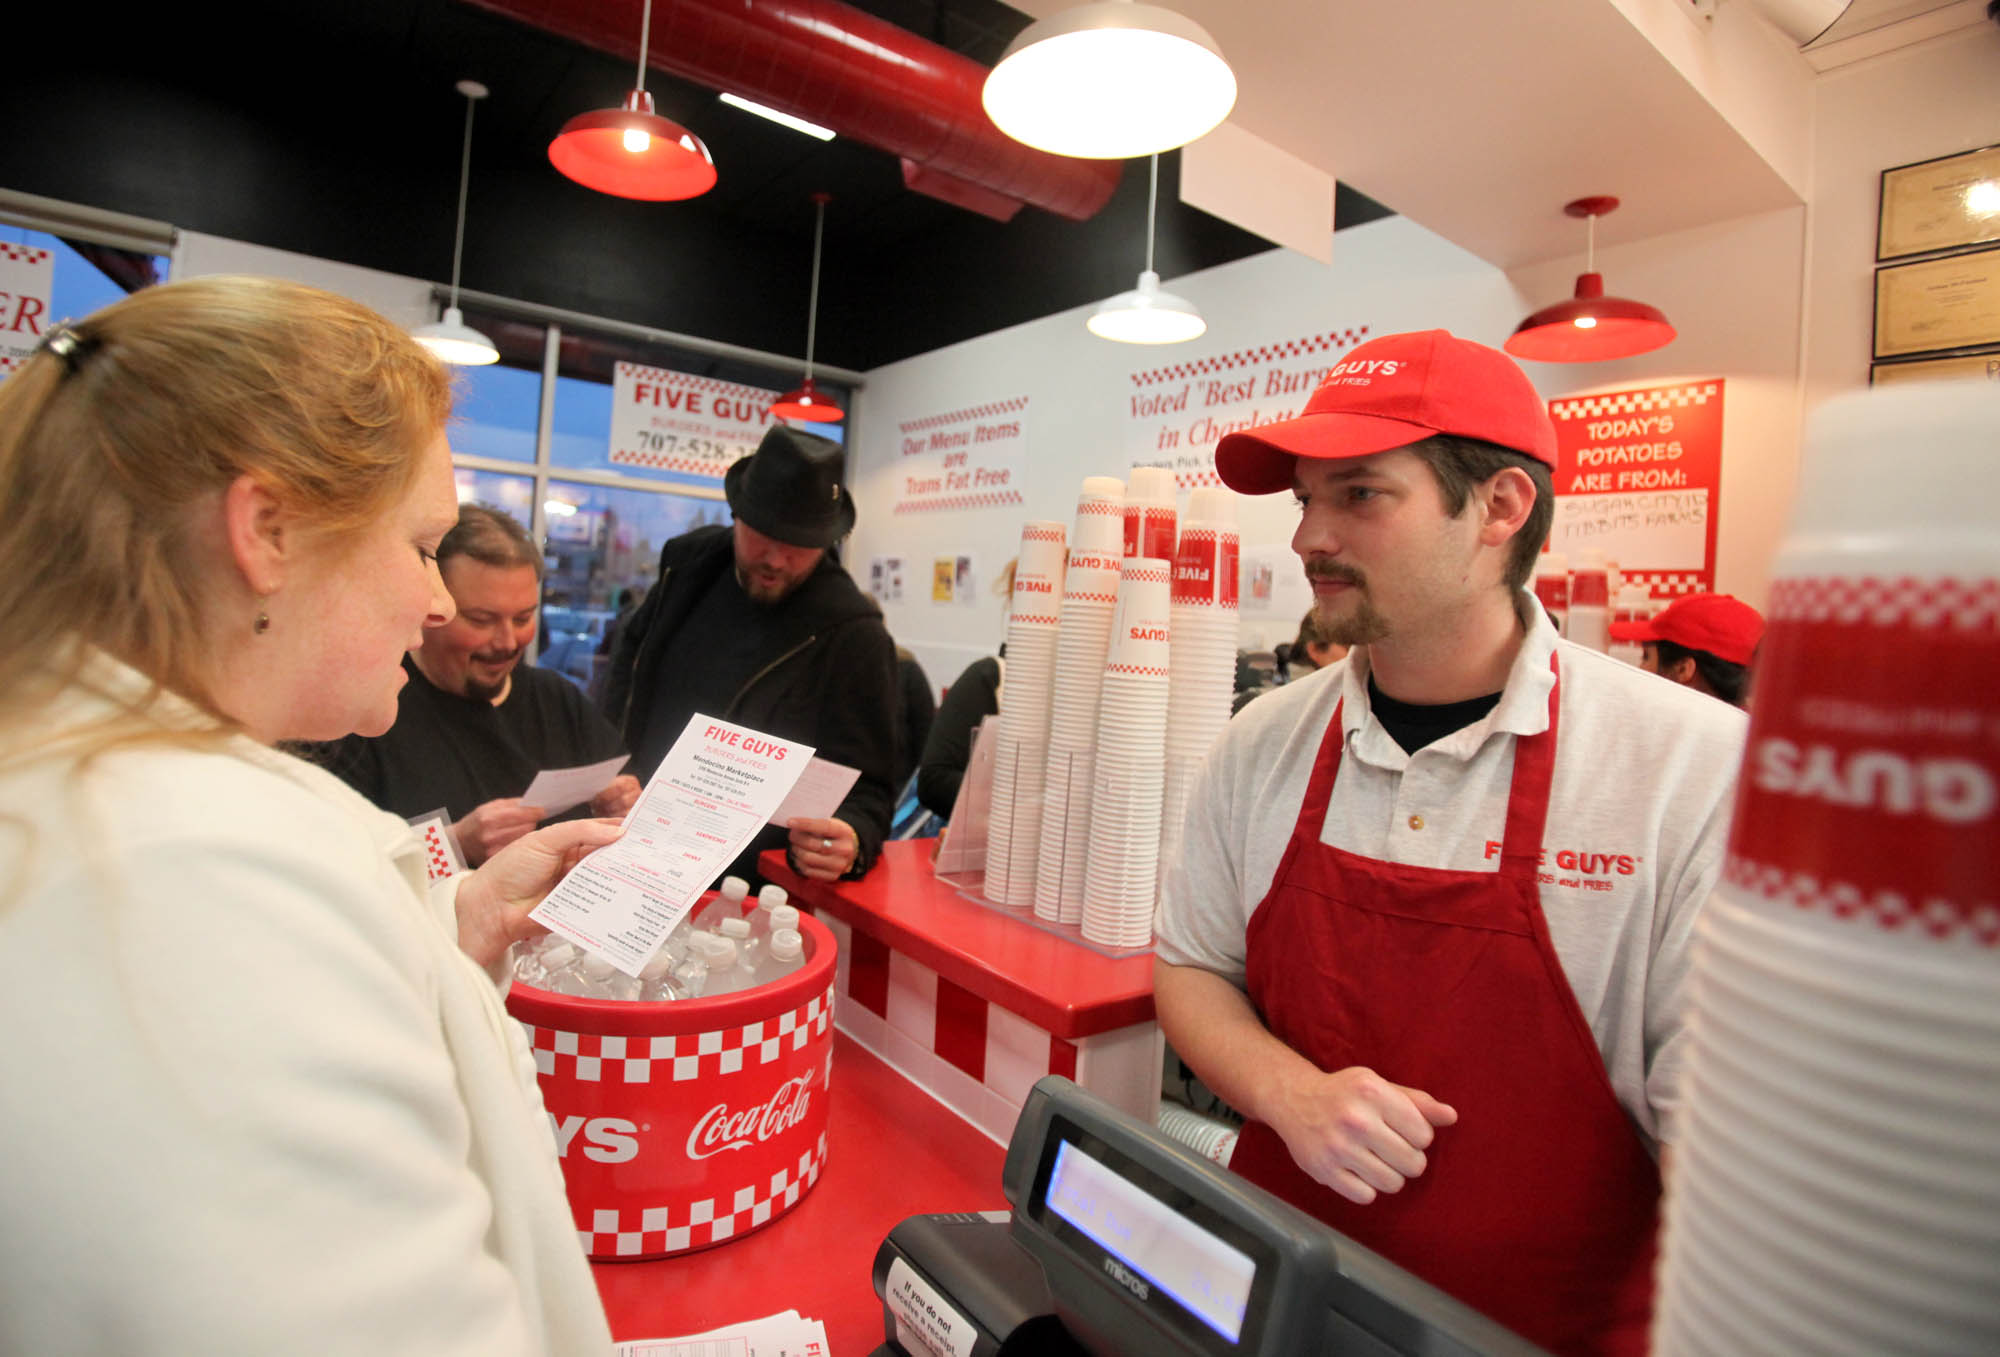 Marcus Haizlip, general manager at the new Five Guys Burger and Fries in Santa Rosa takes the order of Jennifer Marinace, Feb. 15, 2011The location the potatoes come from is posted on the board daily at the new Five Guy's Burger and Fries in Santa Rosa, Feb. 15, 2011| Crista Jeremiason